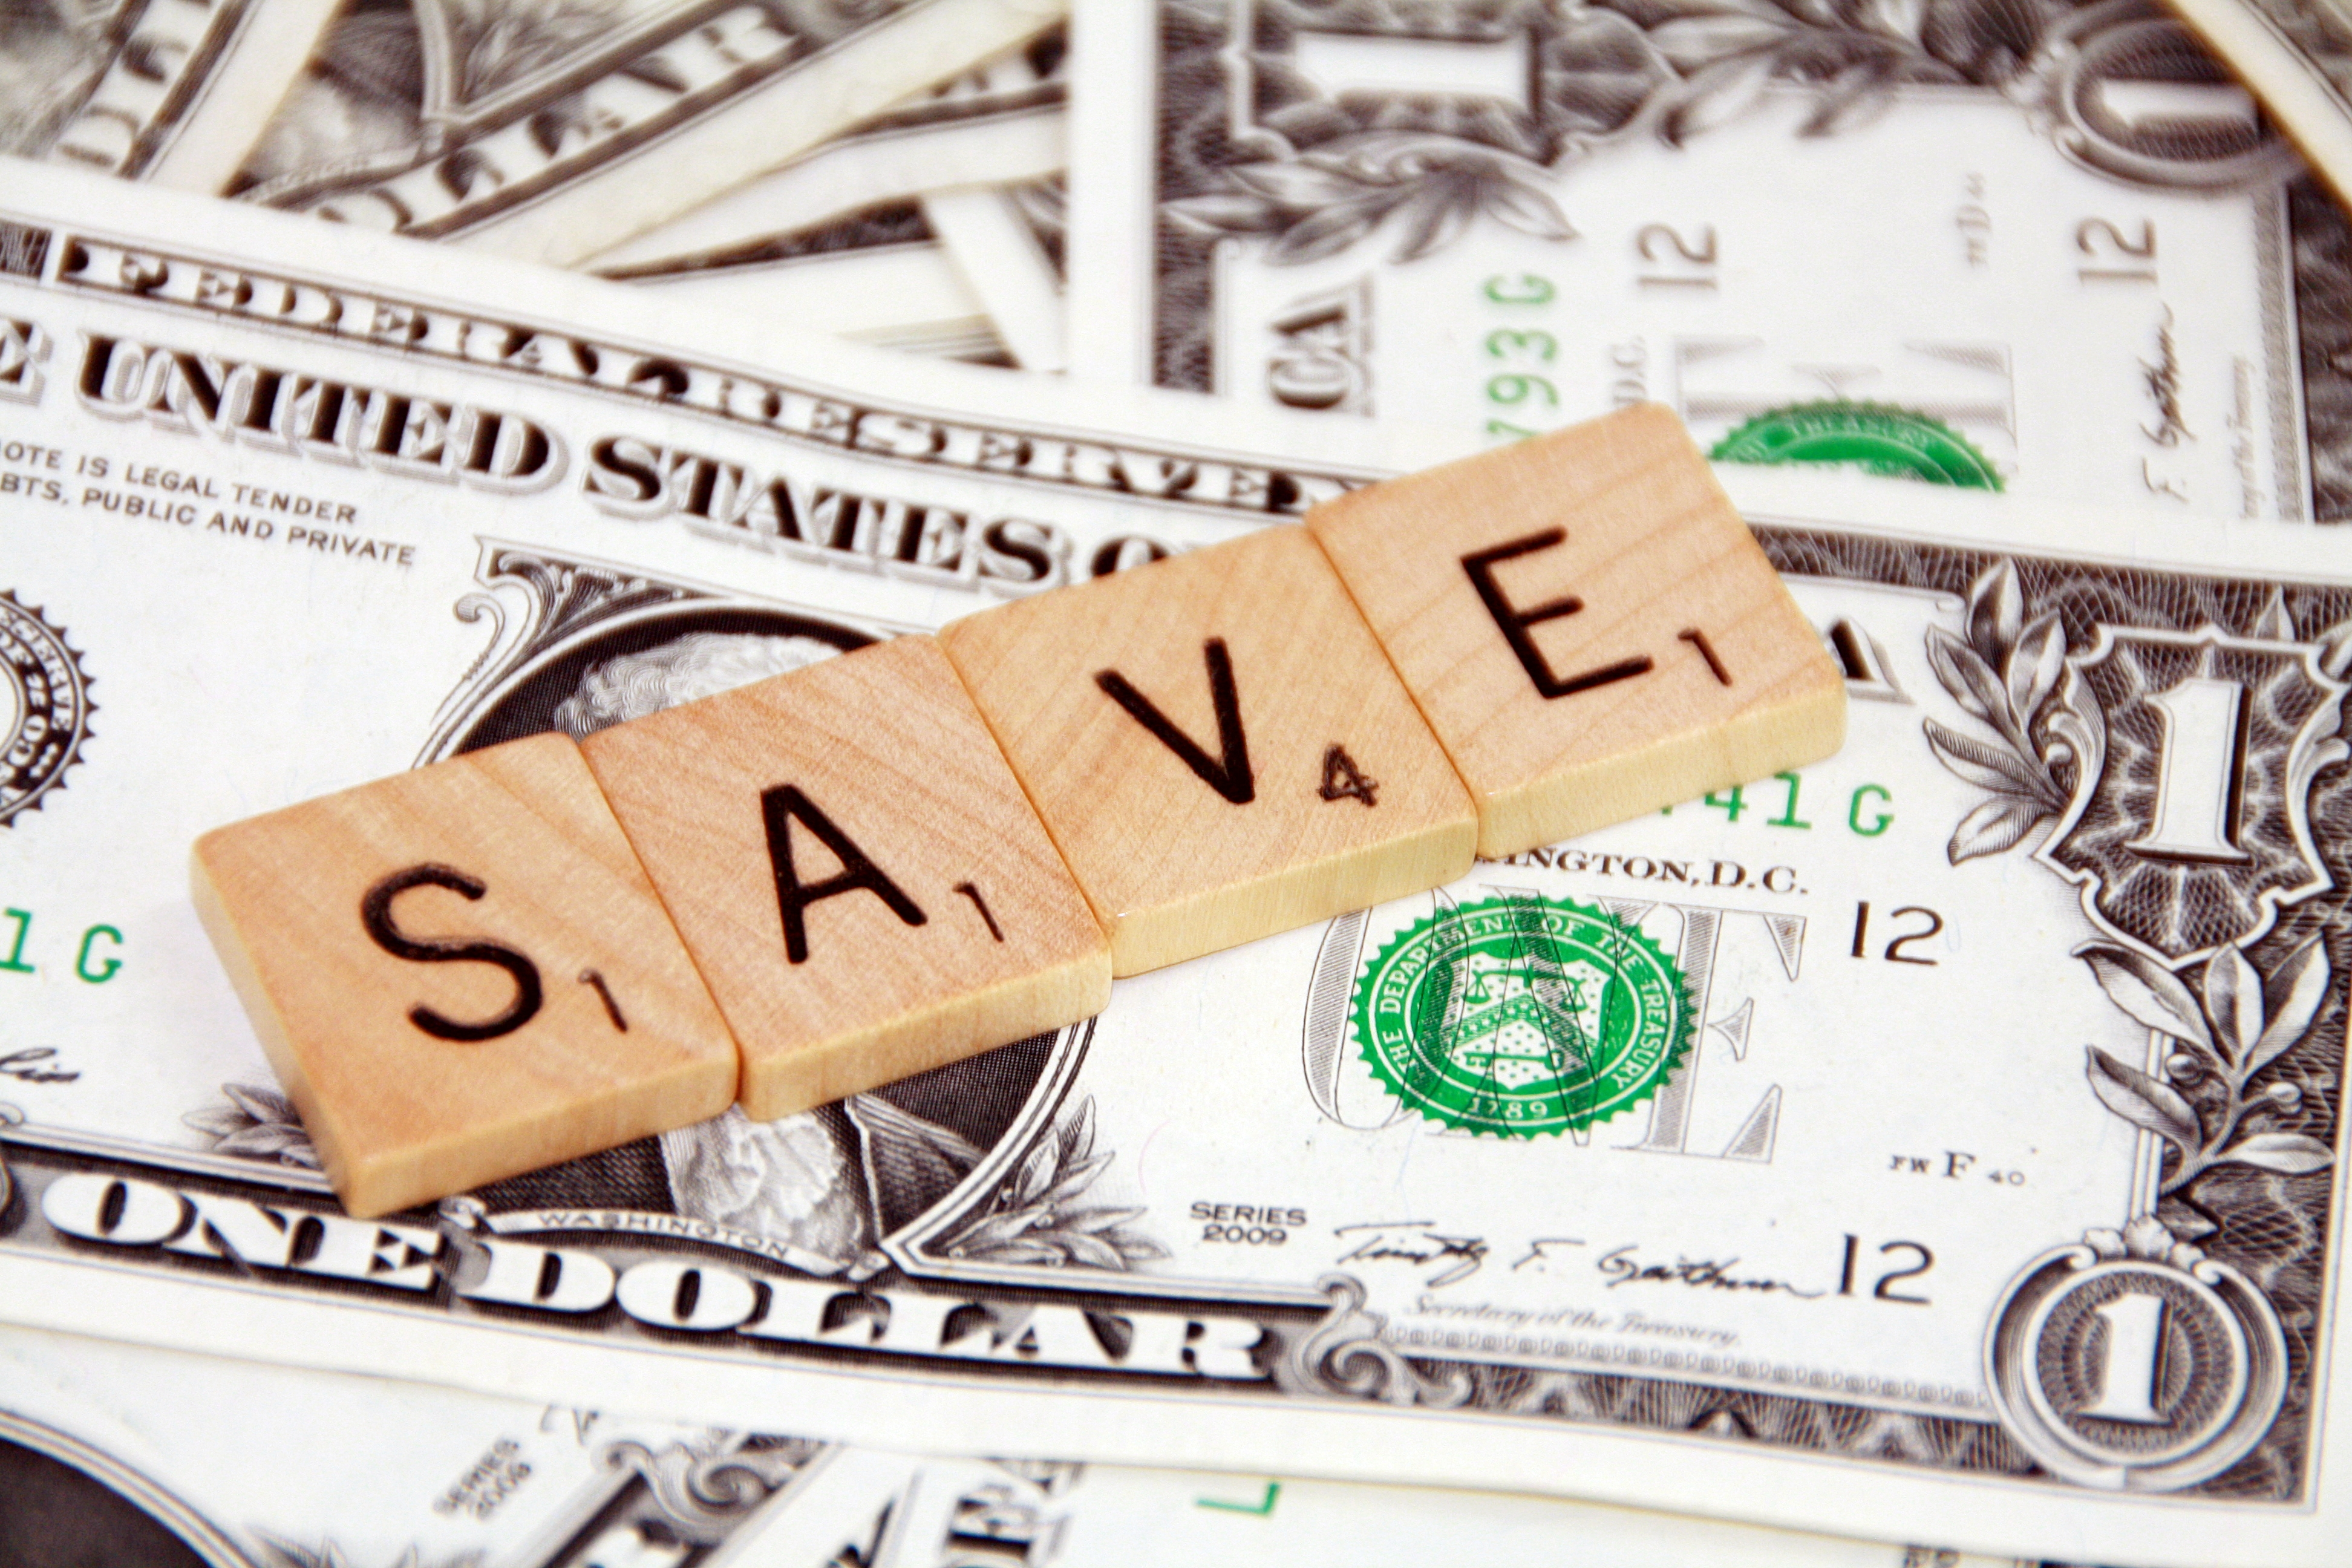 Don't Let Saving $ Cost You $